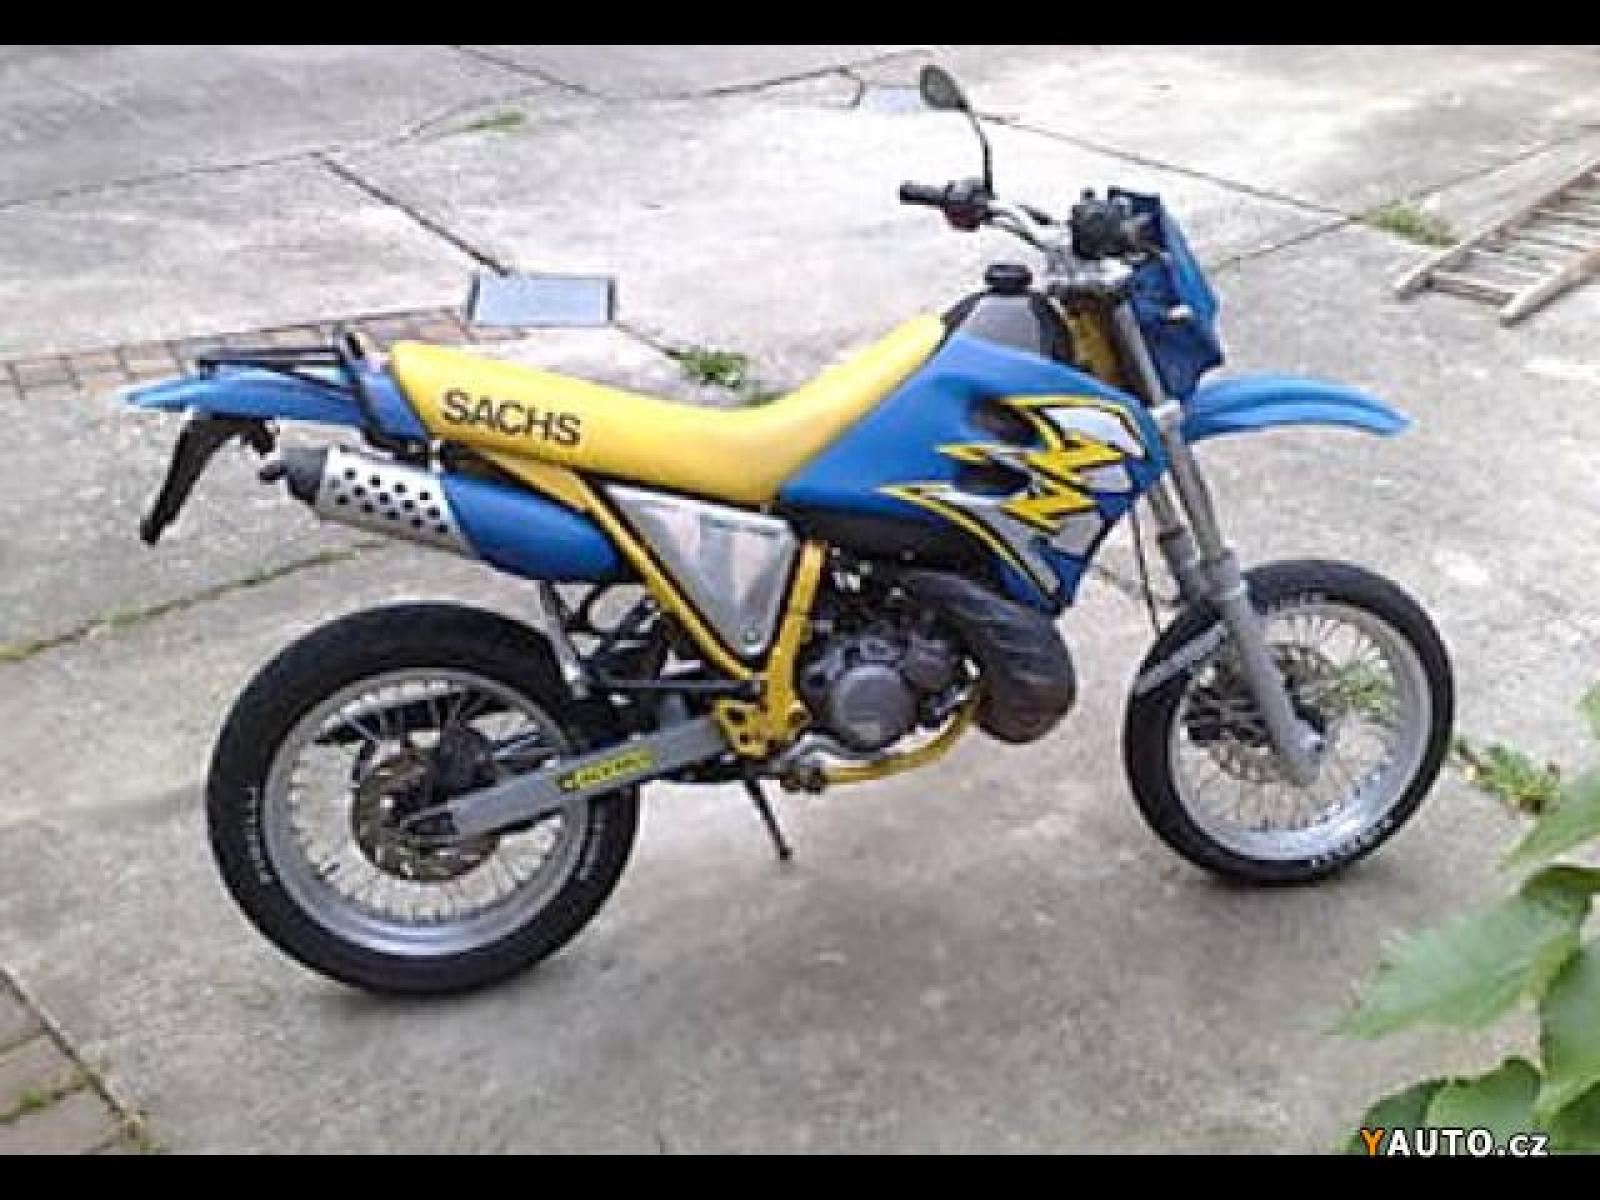 Sachs ZZ 125 2001 images #127617